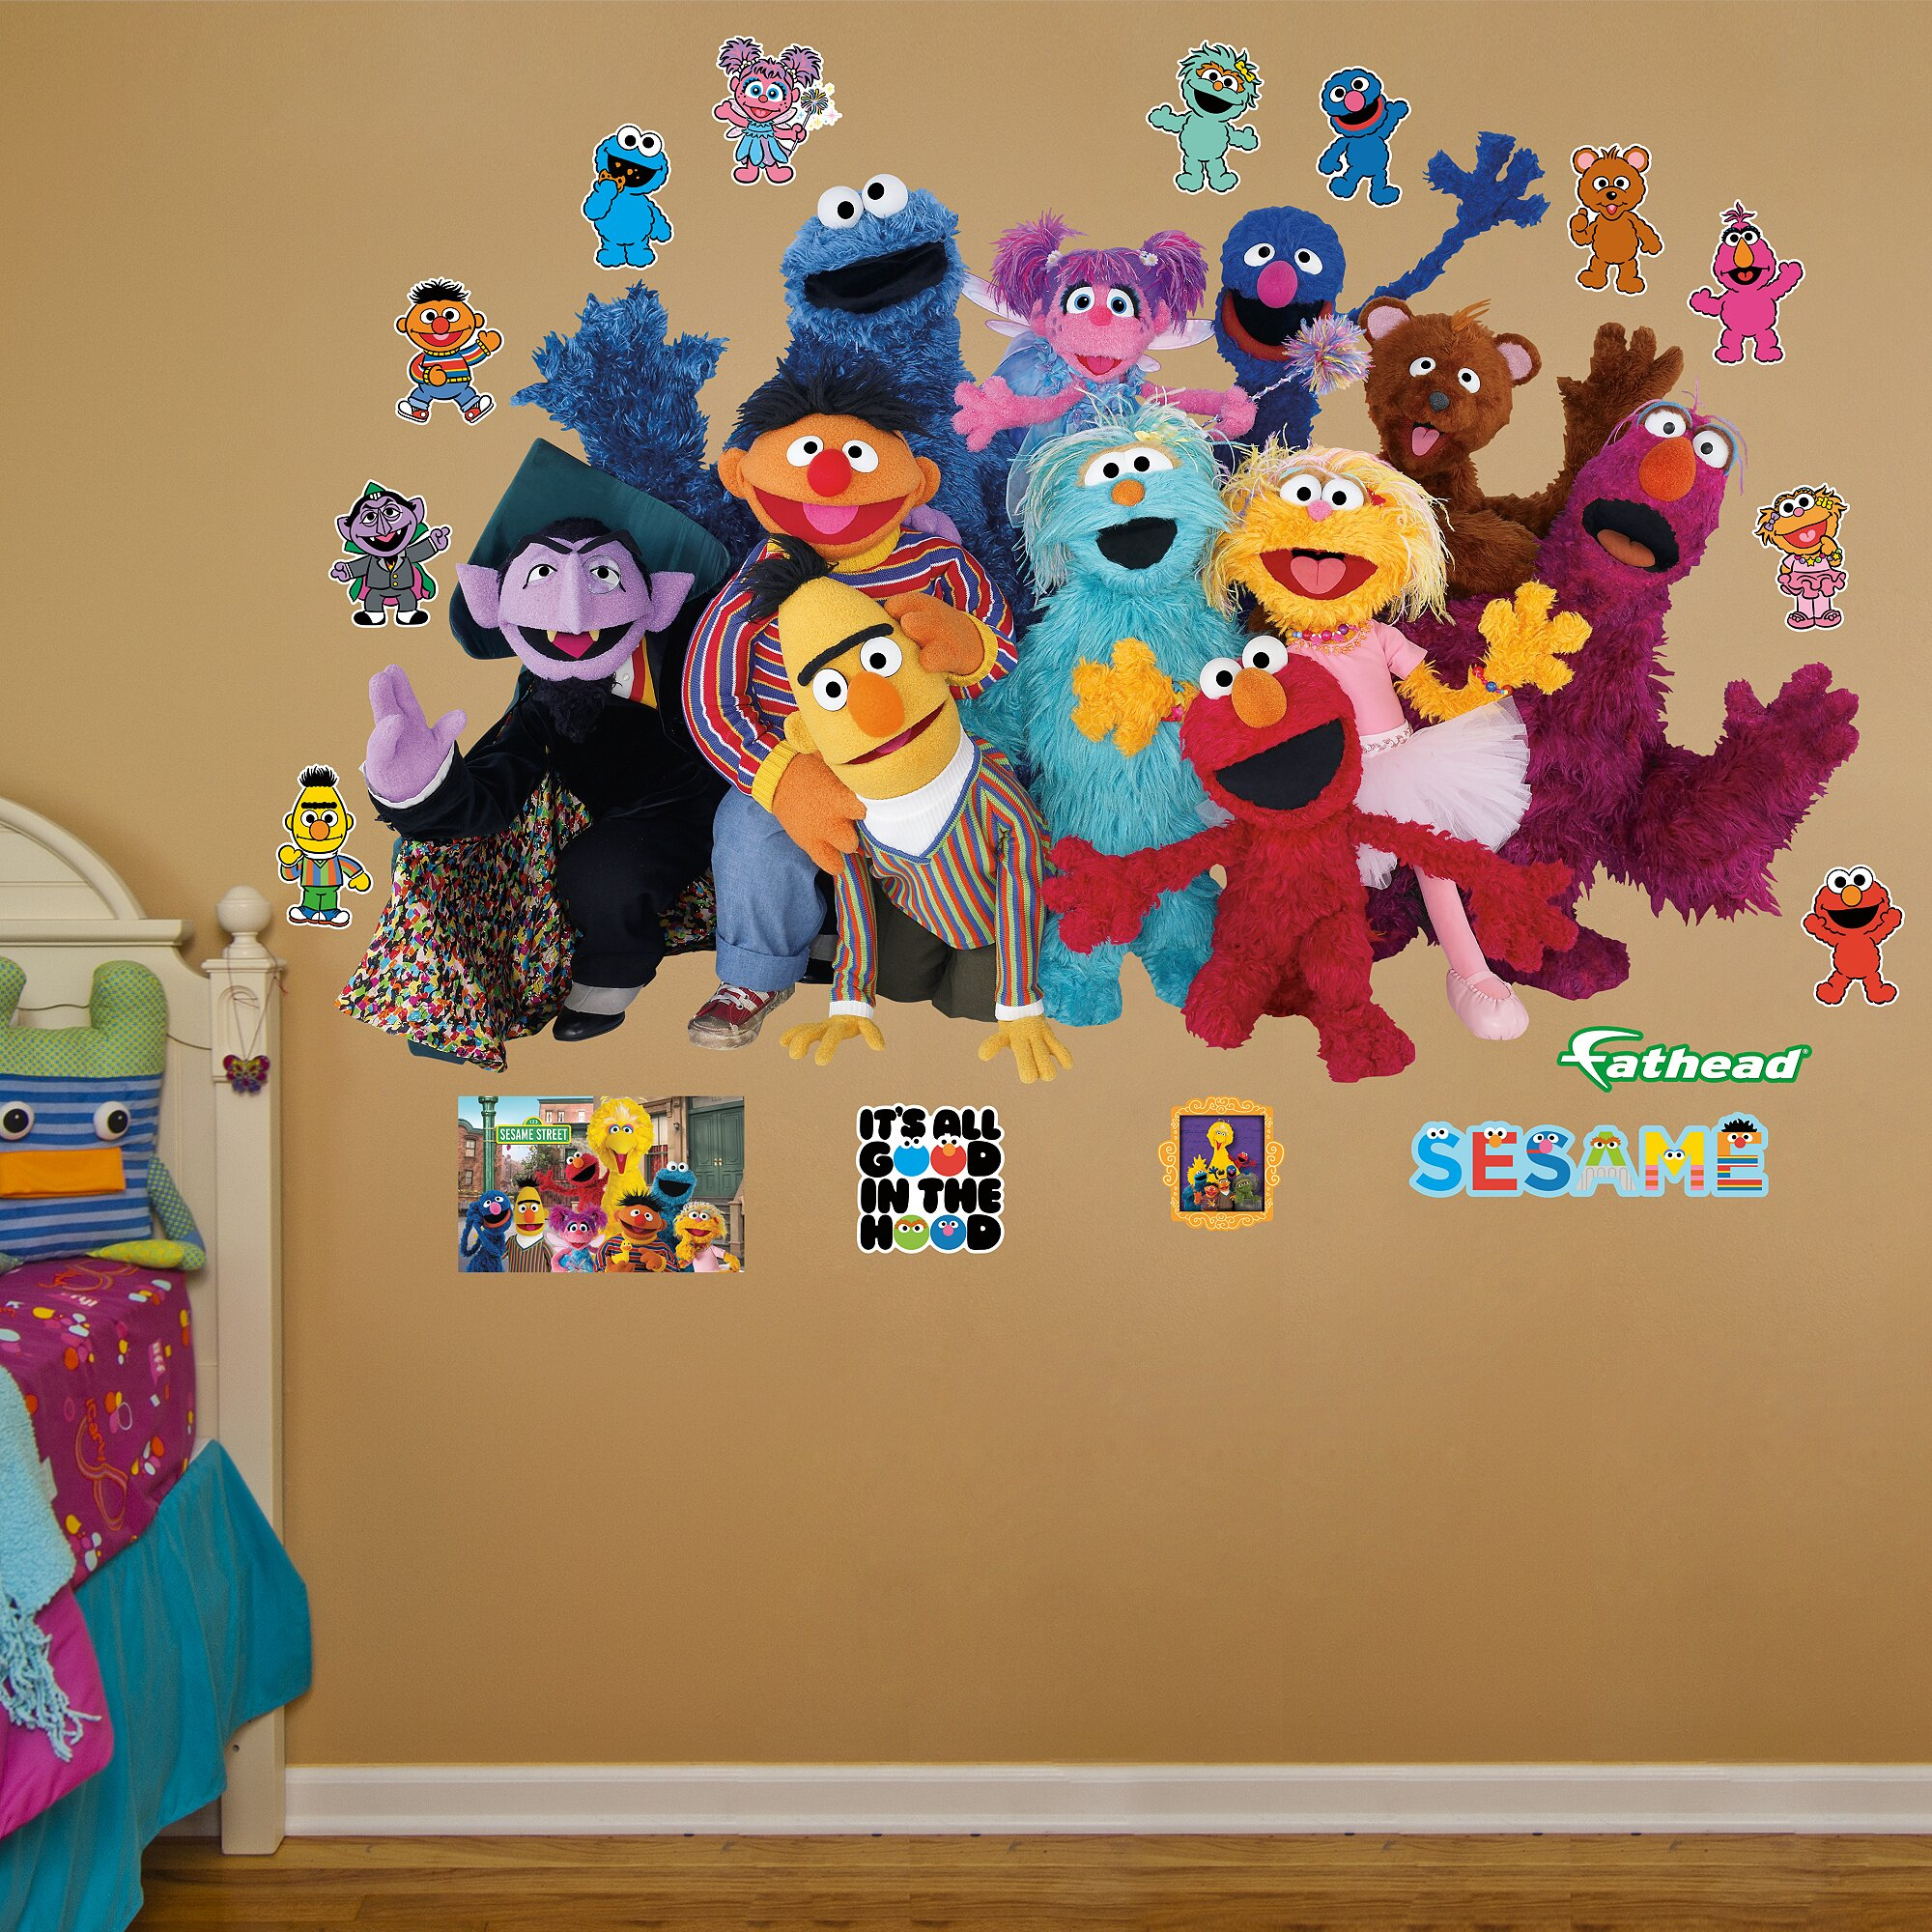 Fathead RealBig Sesame Street Group Wall Decal